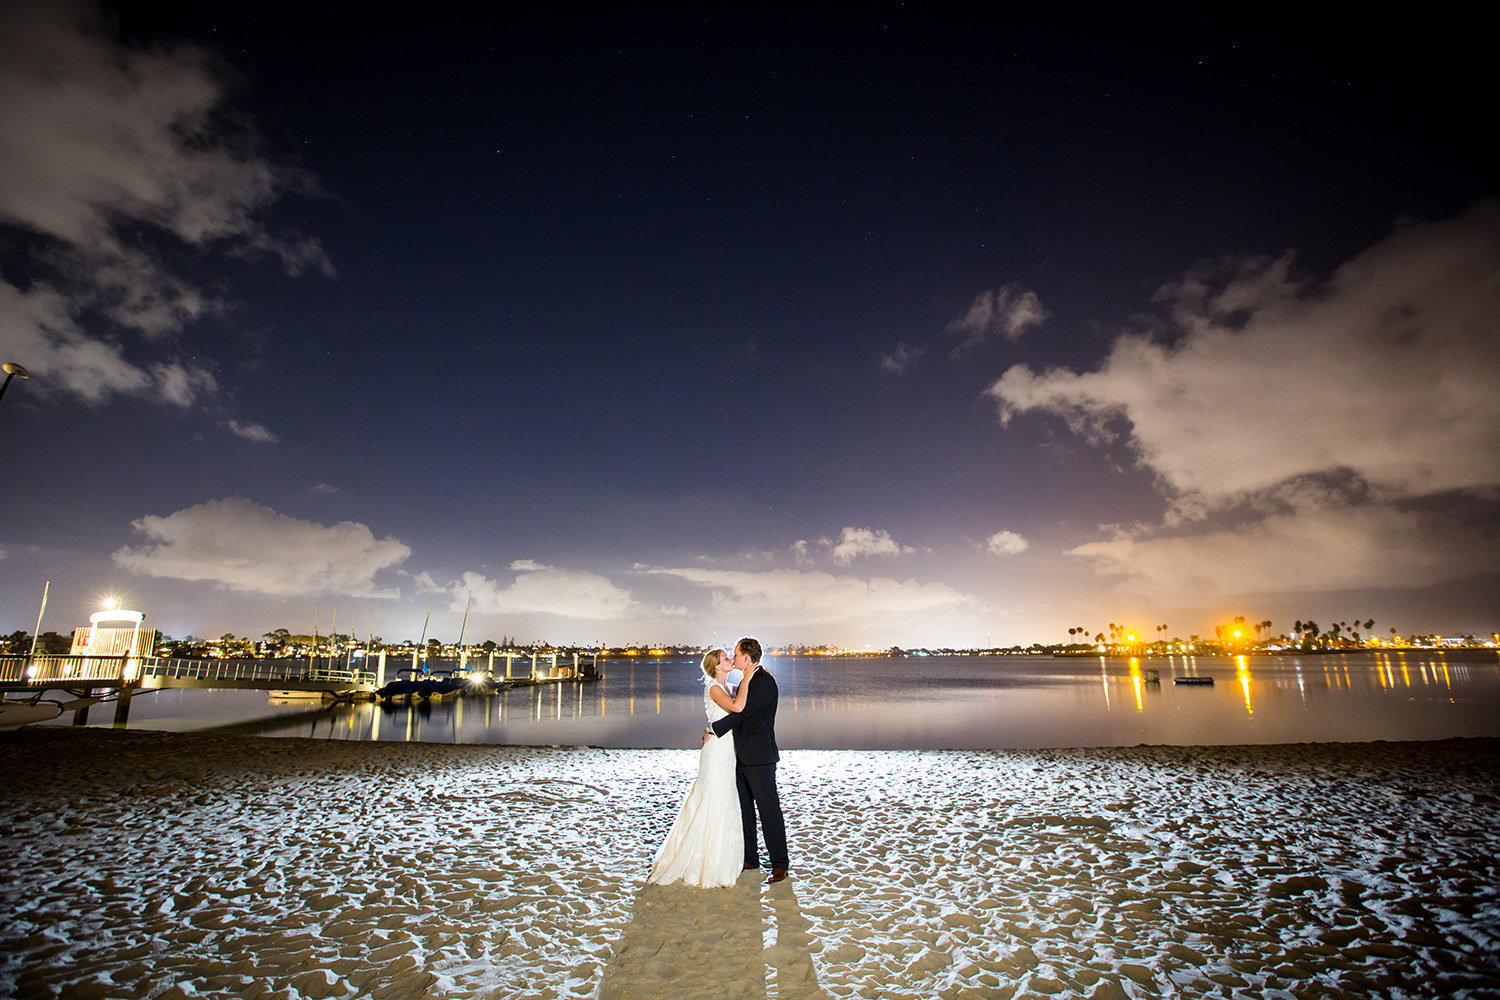 night image of bride and groom and bay in background